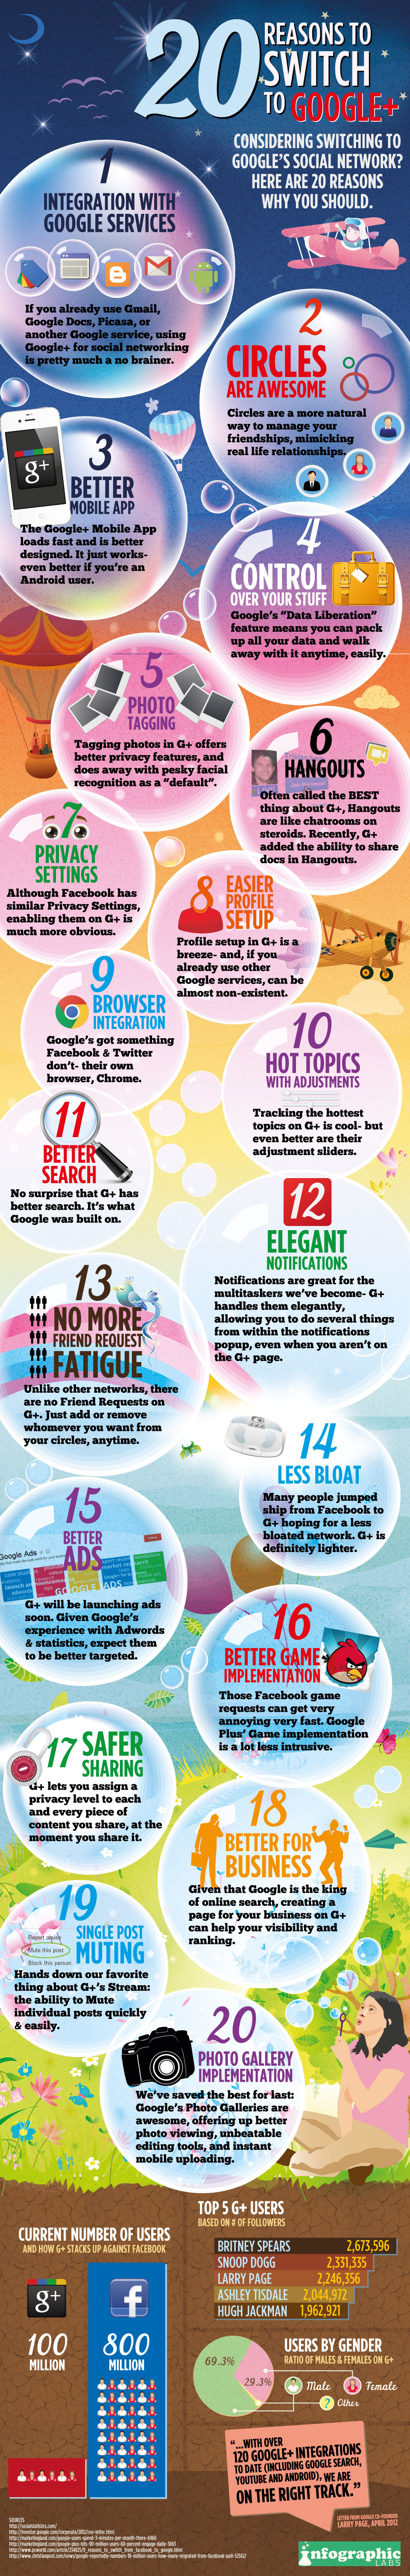 20-Reasons-To-Switch-To-Google+-infographic